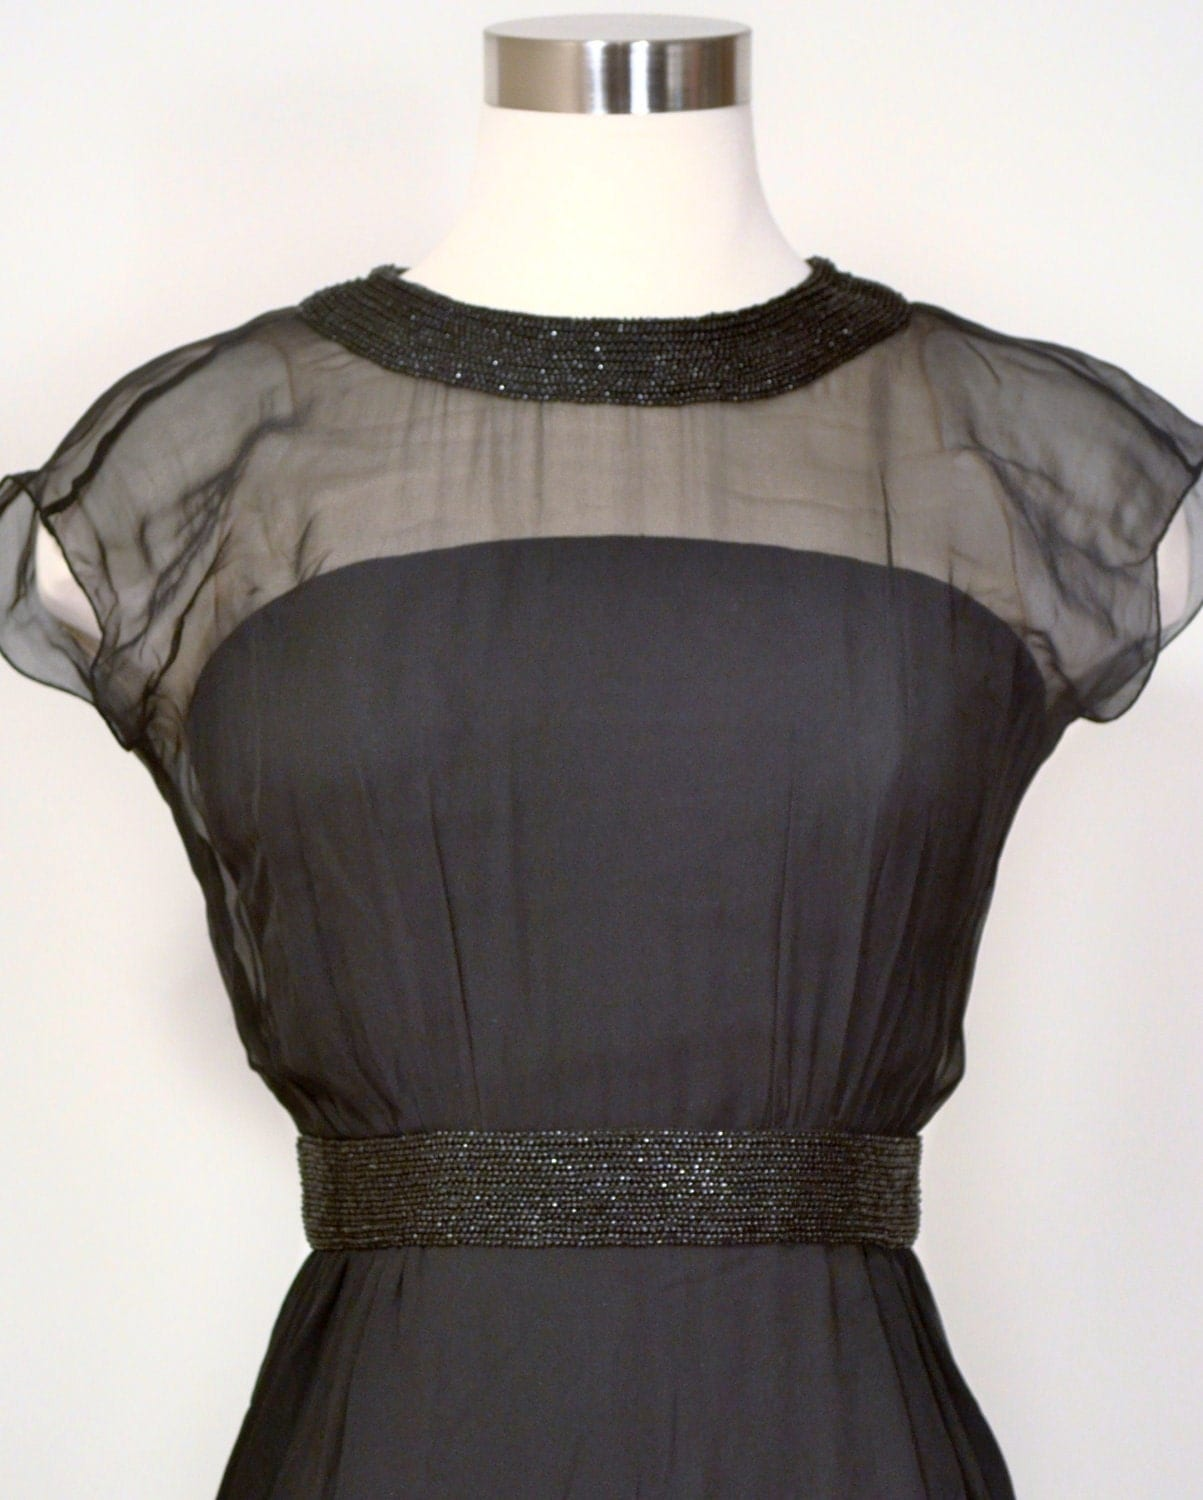 Black Dress Vintage Cocktail Wiggle Sheer Organza Glass Beaded Collar & Waist Lee Claire New York 1950's XXS/XS Little Black Dress